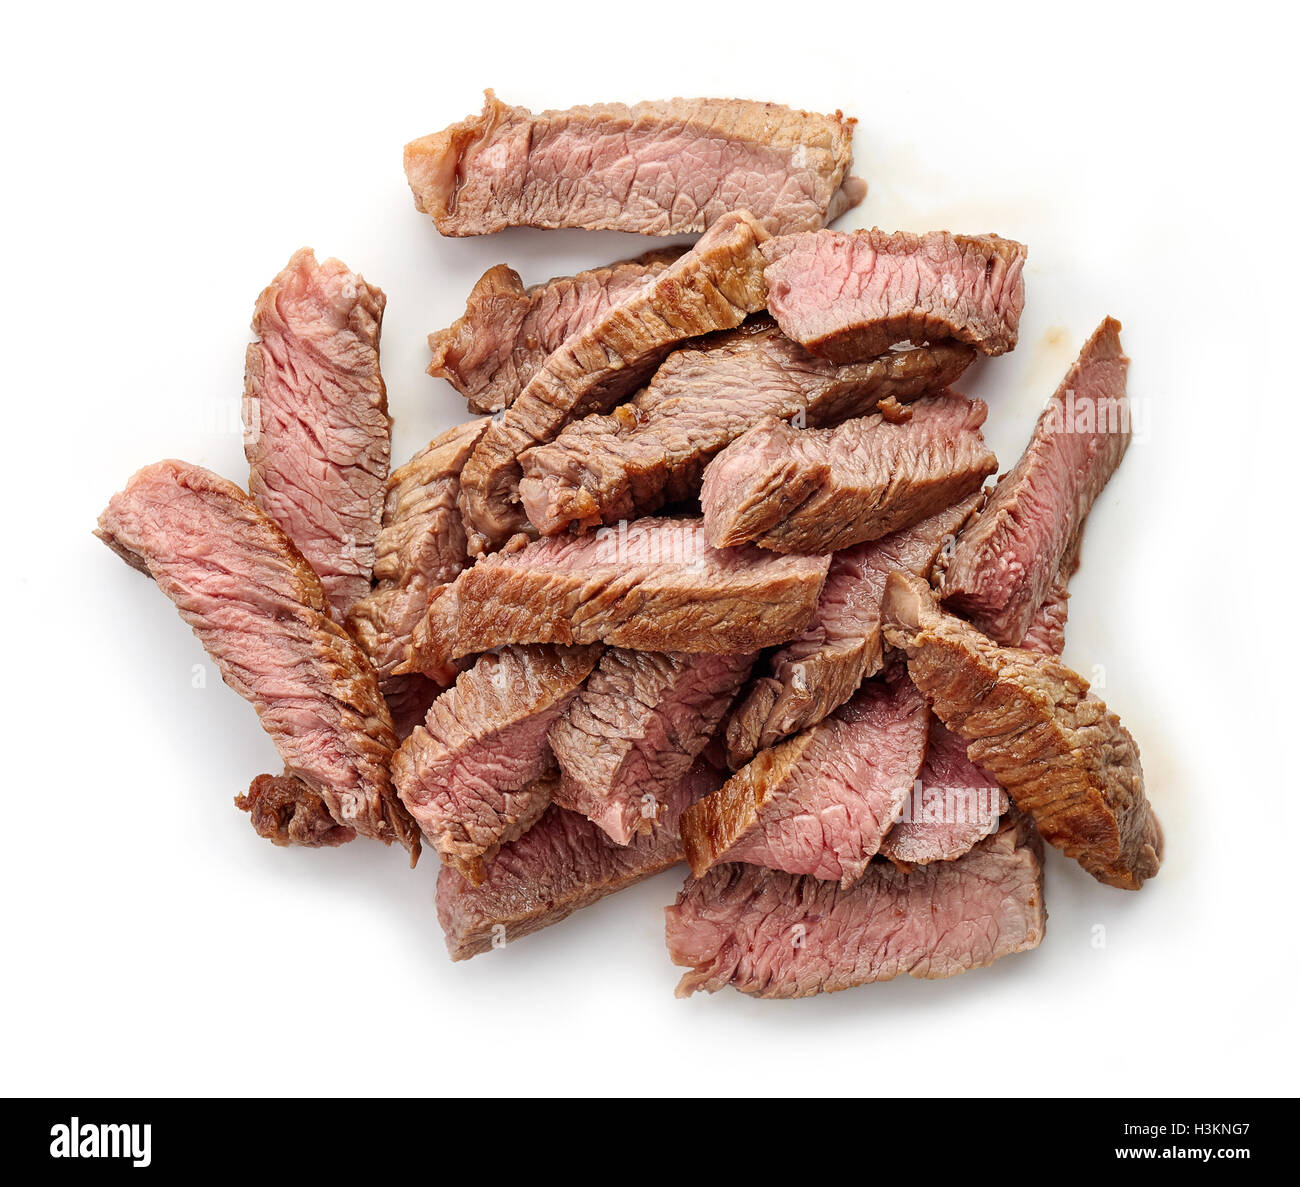 Bowl of grilled beef slices isolated on white background, top view - Stock Image